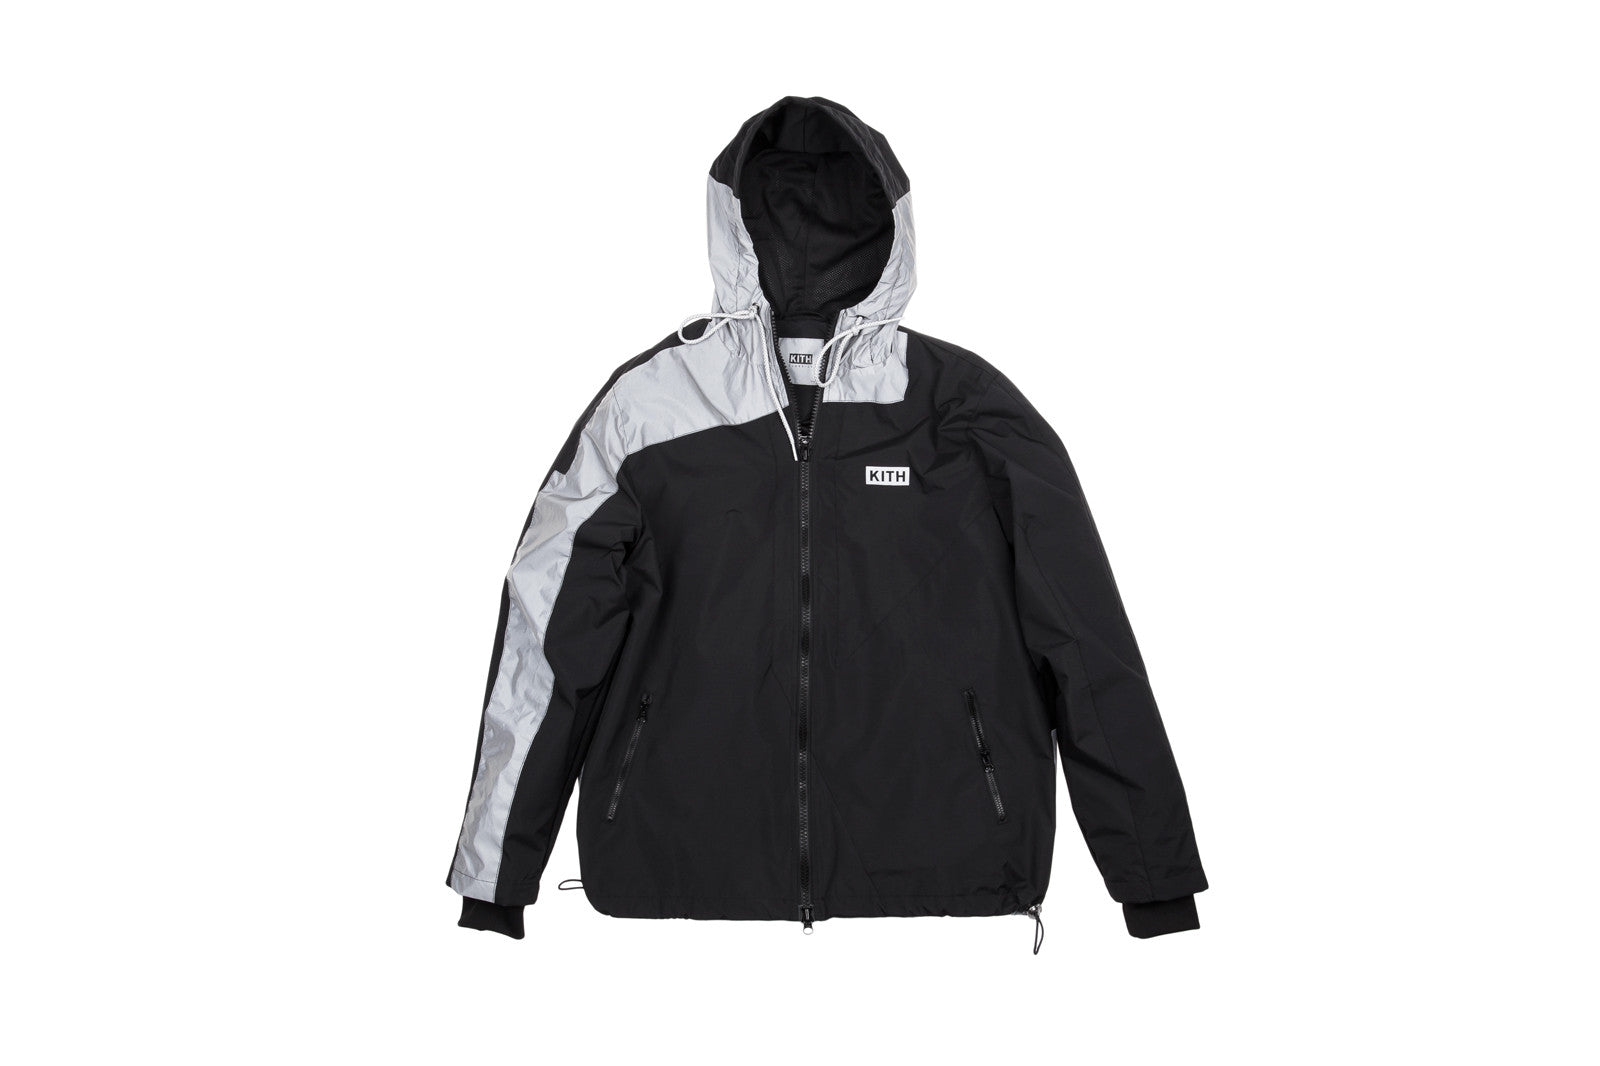 9774bd5289 https://kith.com/ daily https://kith.com/products/copy-of-just-don-new ...